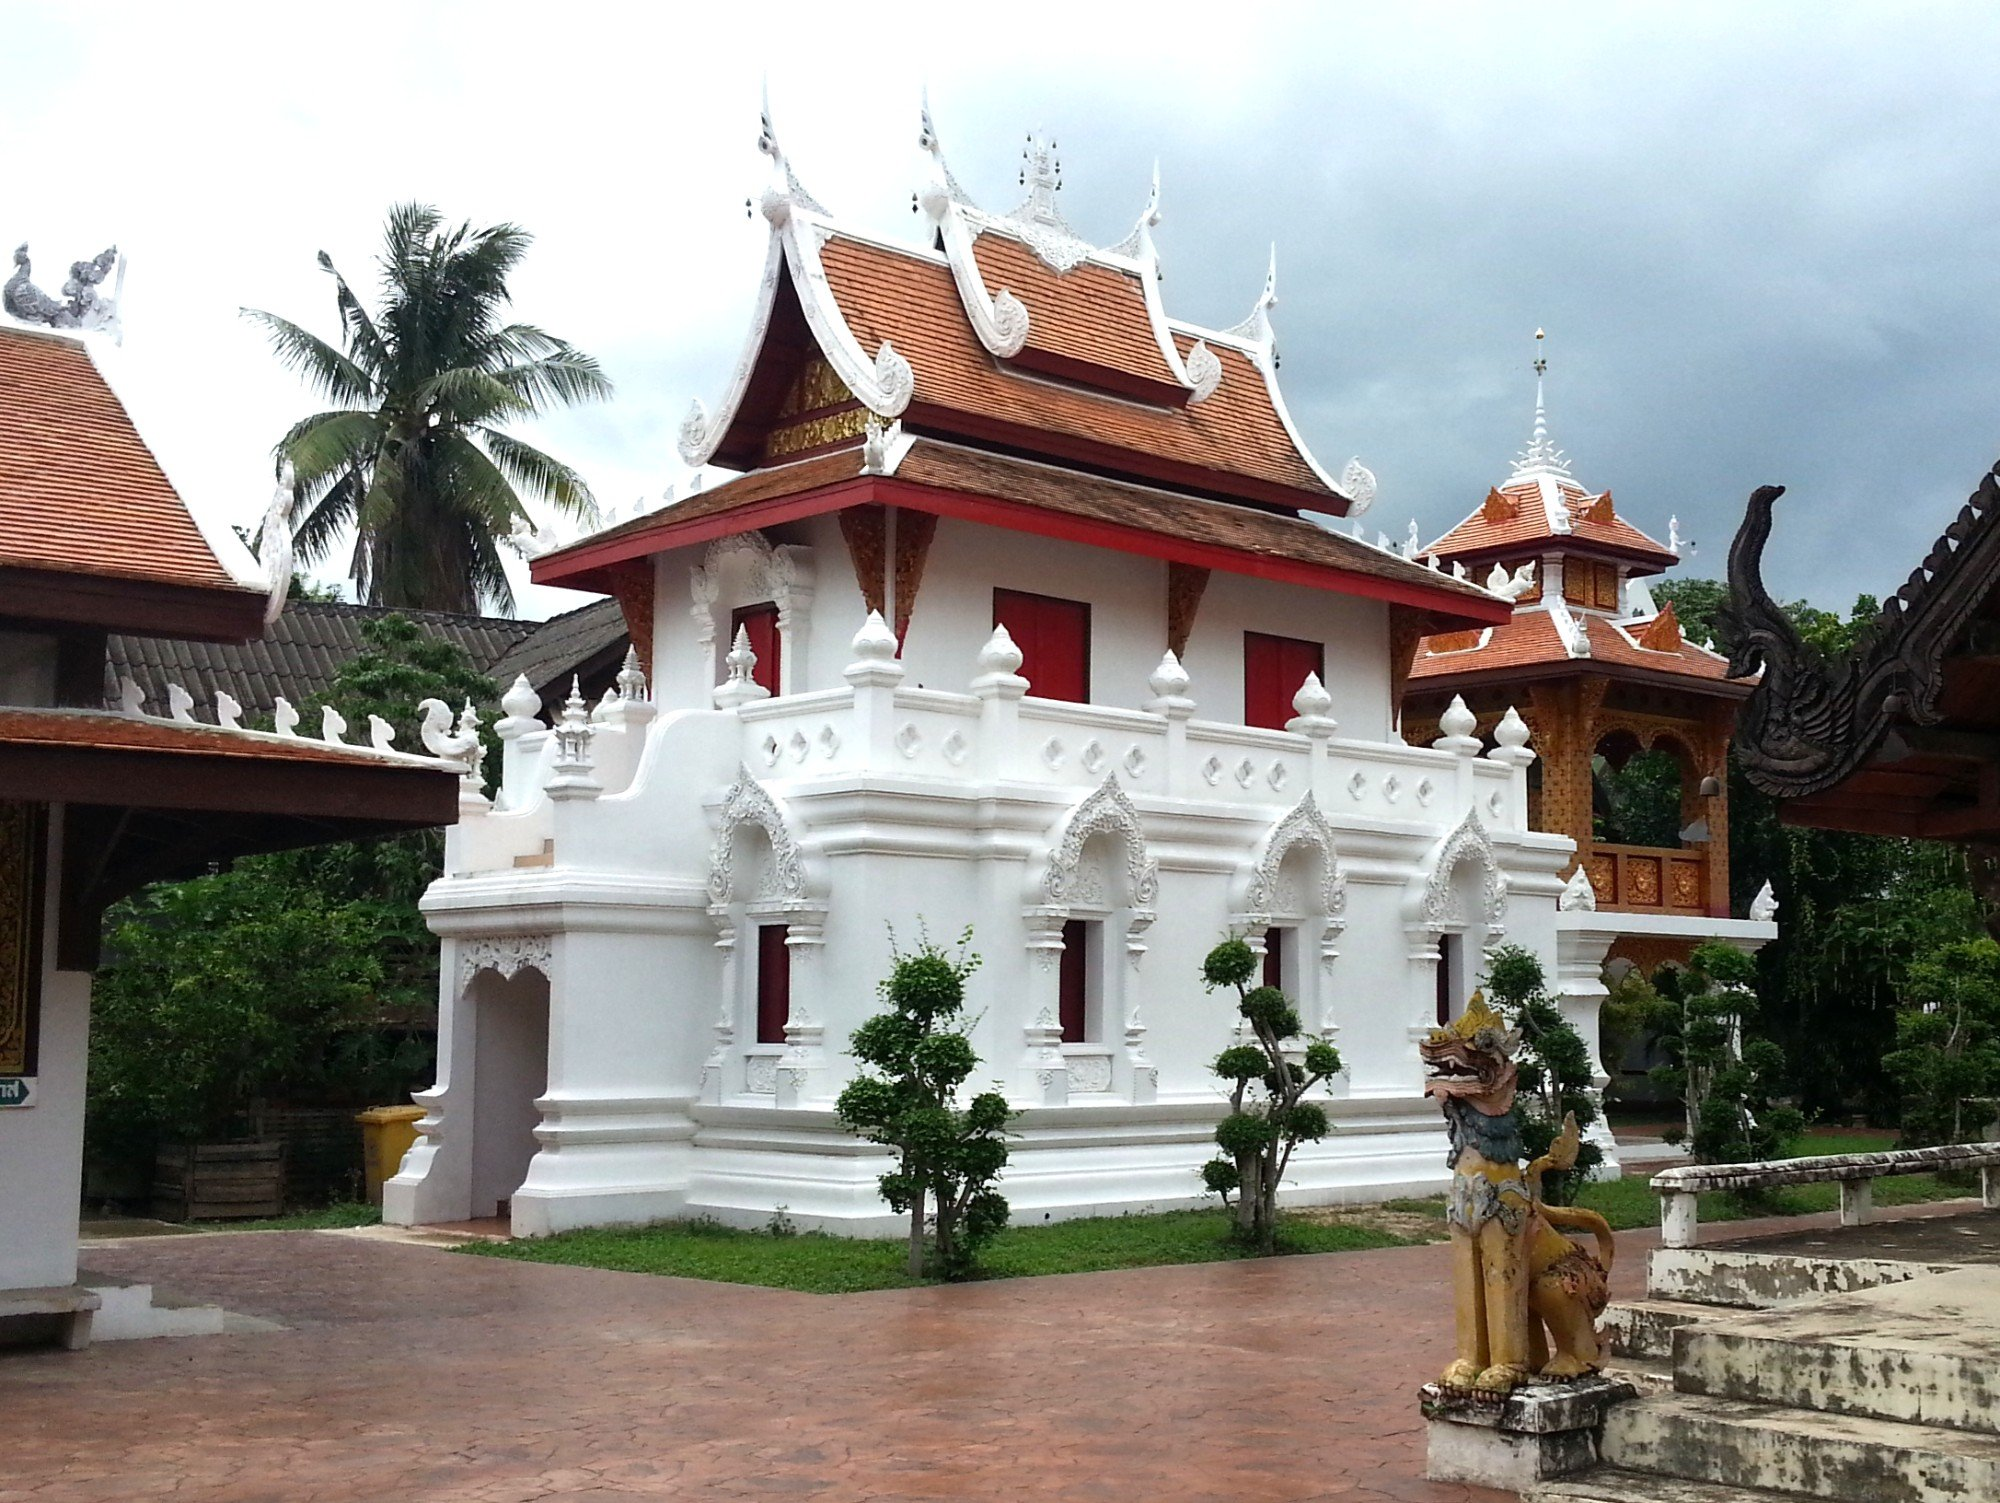 Library at Wat Pratu Pong